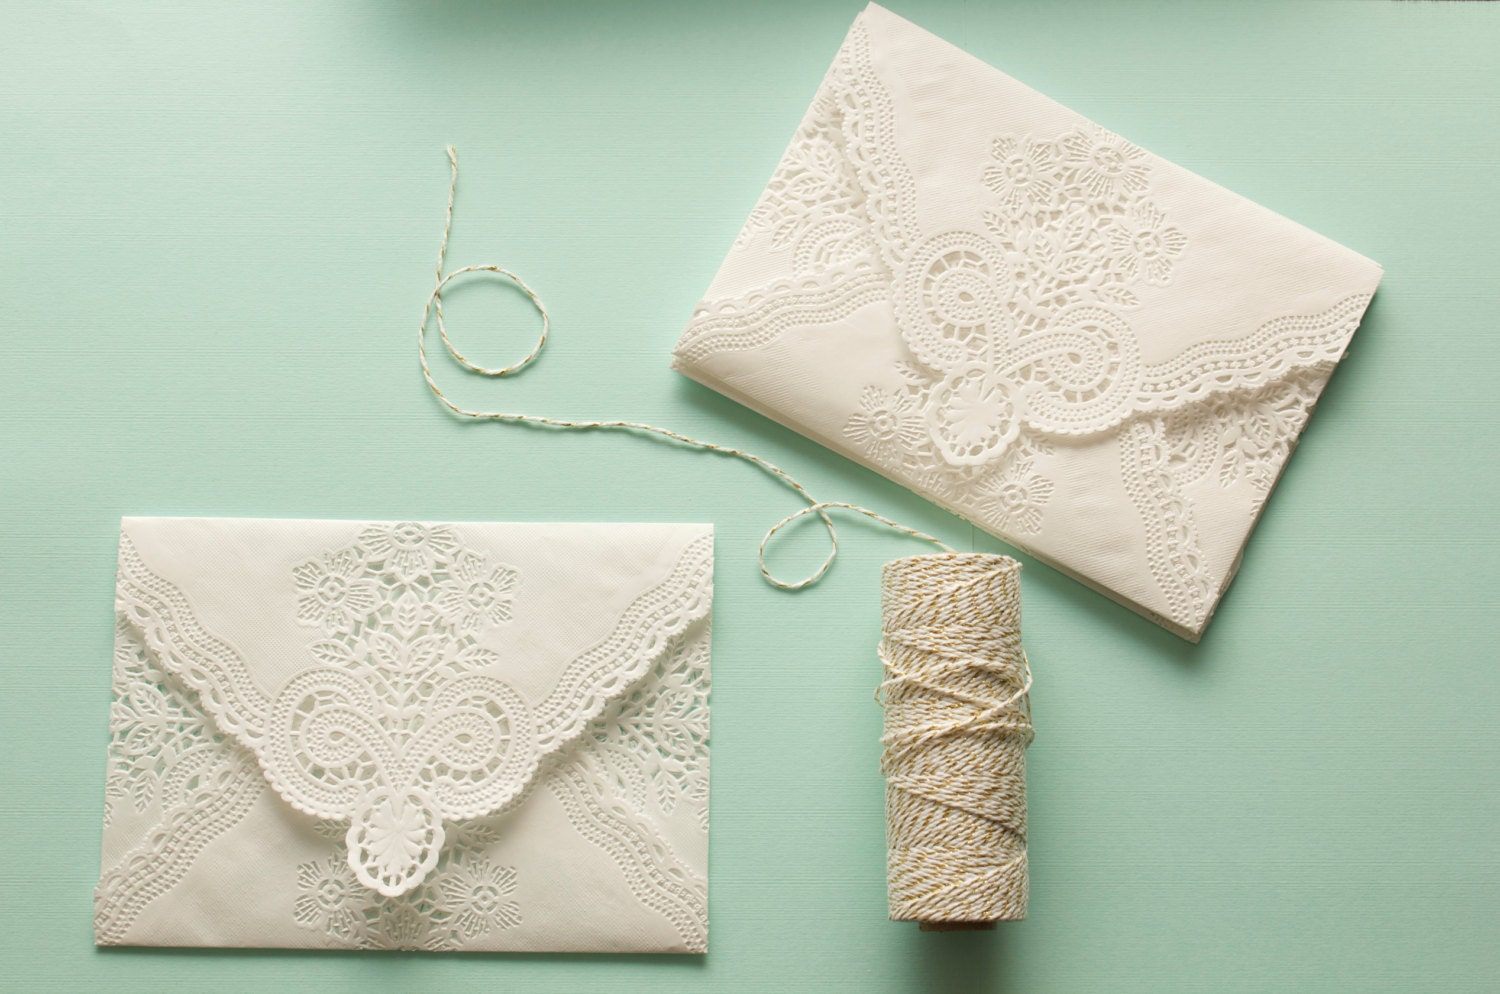 Vintage Lace Envelopes Romantic Paper Lace Doily Wedding Invitation Envelopes Set Of 10